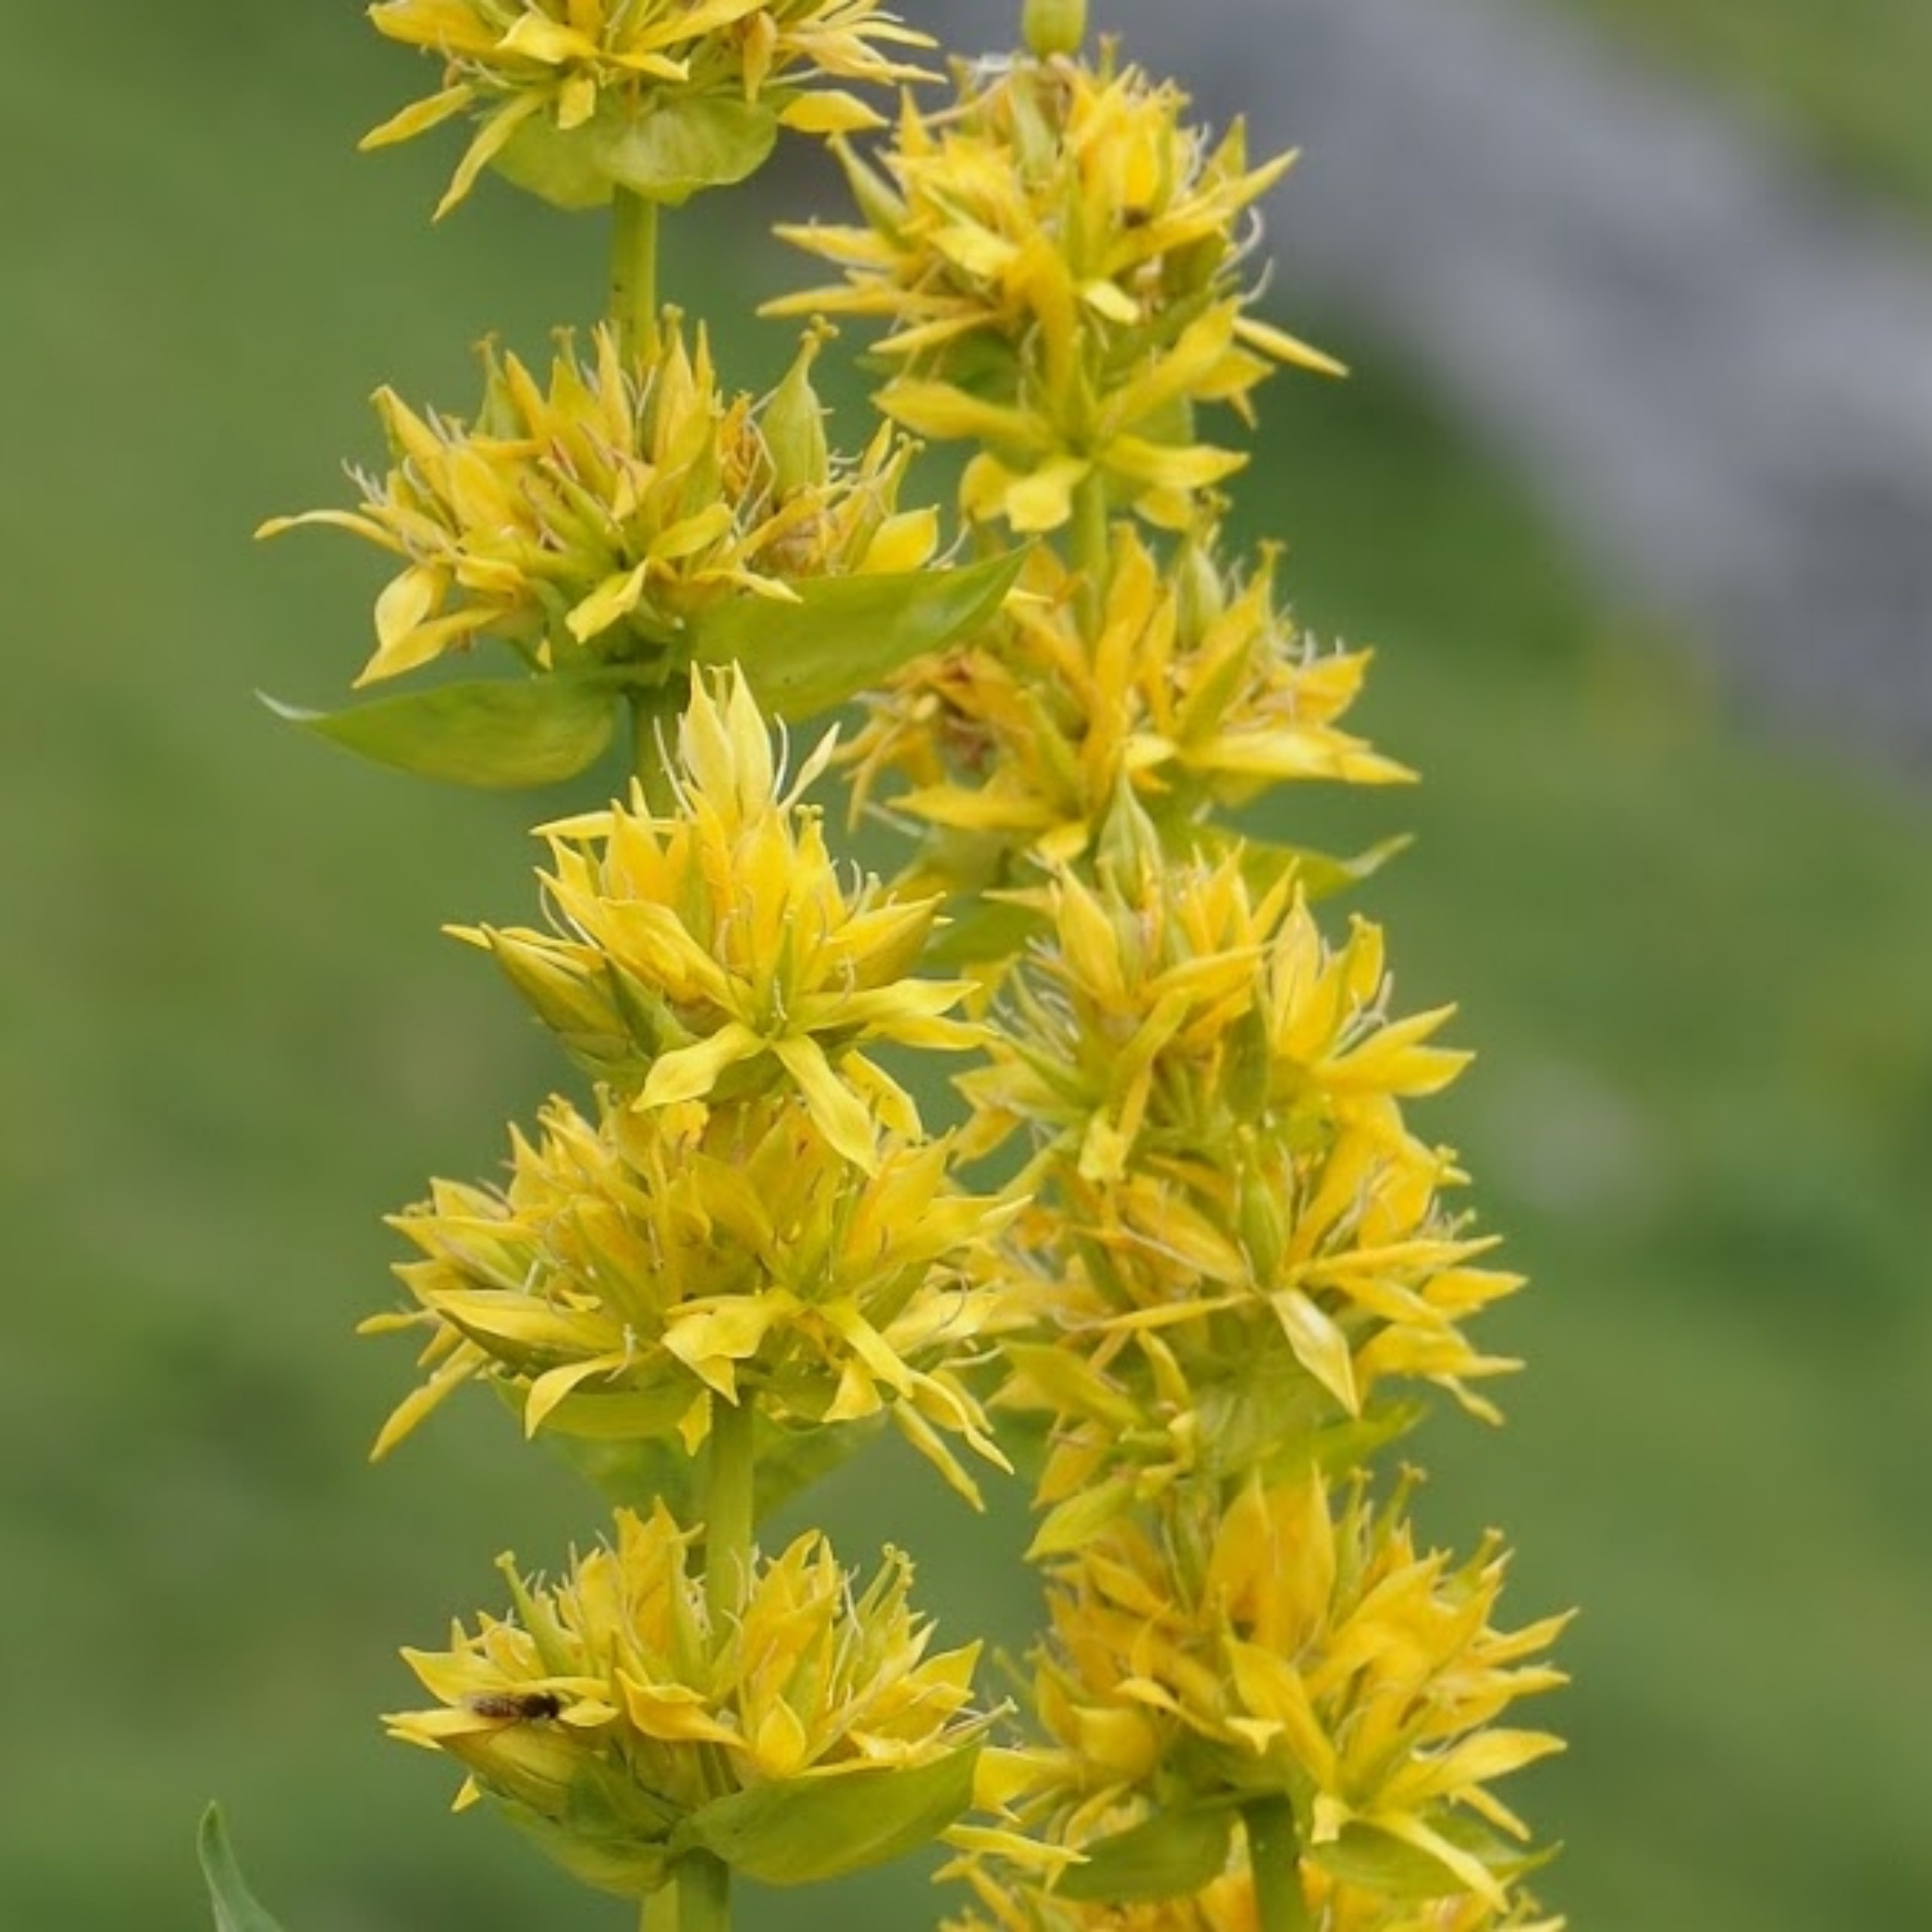 Yellow gentian cultivation